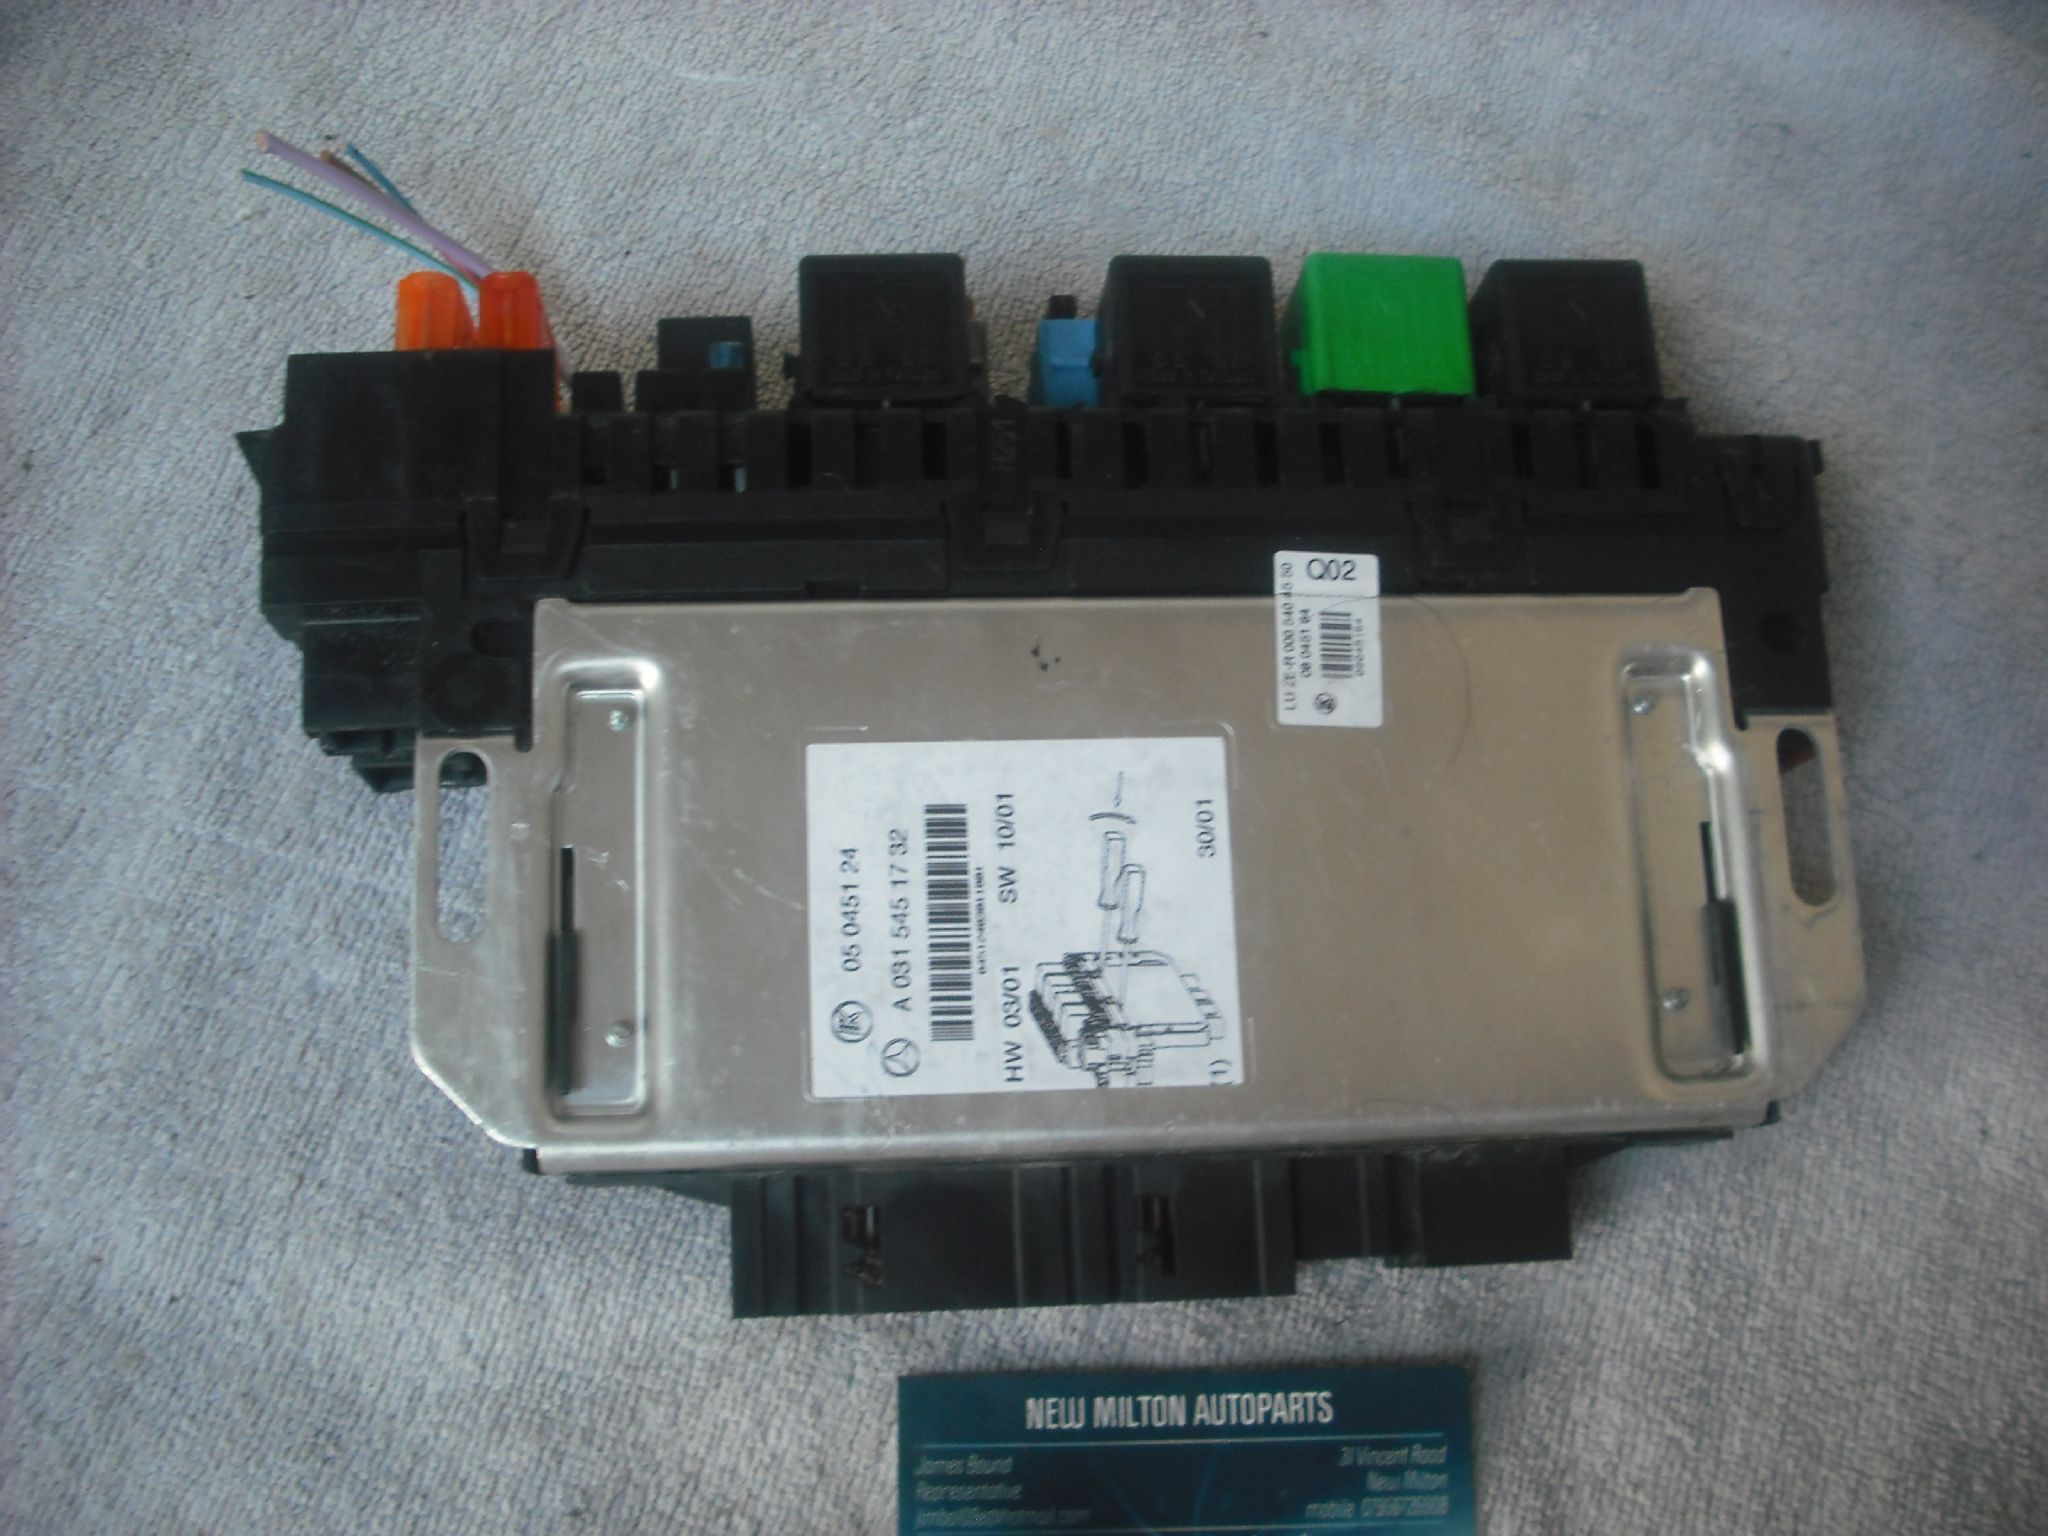 Mercedes Benz S550 Fuse Box Schematic Diagrams Diagram S Class Block And U2022 Parts